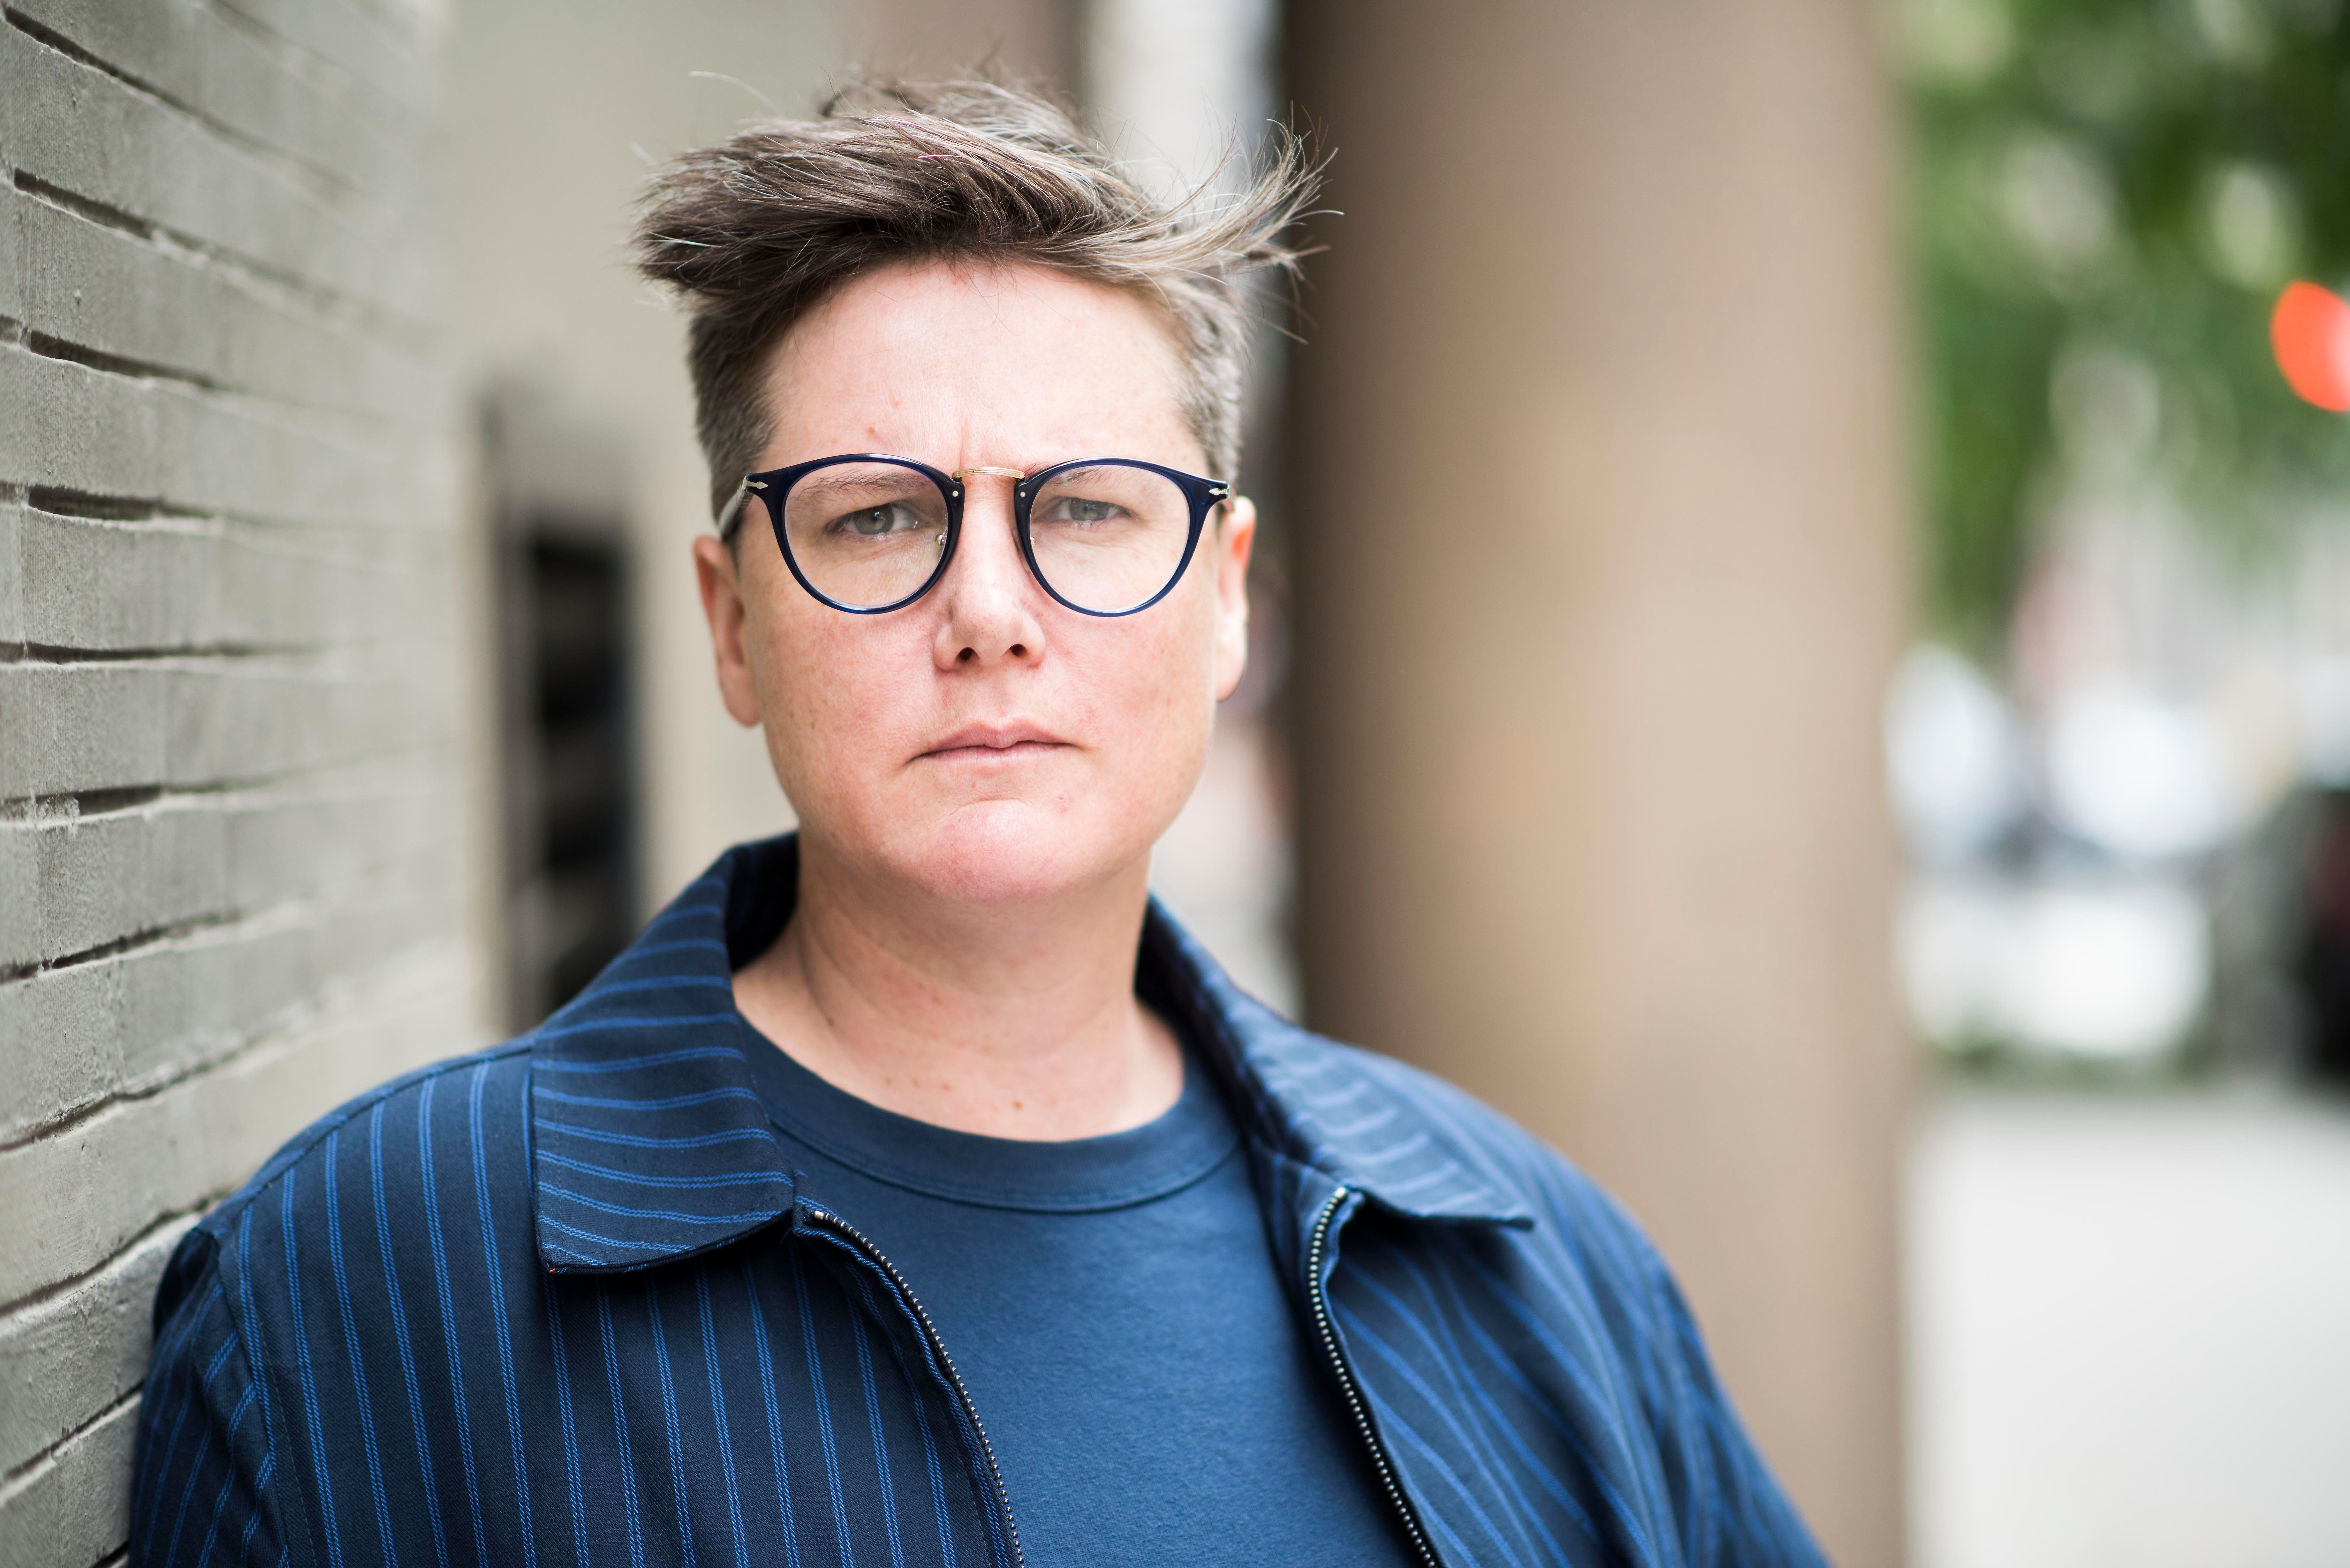 How 'Fury' Fueled Hannah Gadsby's Stand-Up